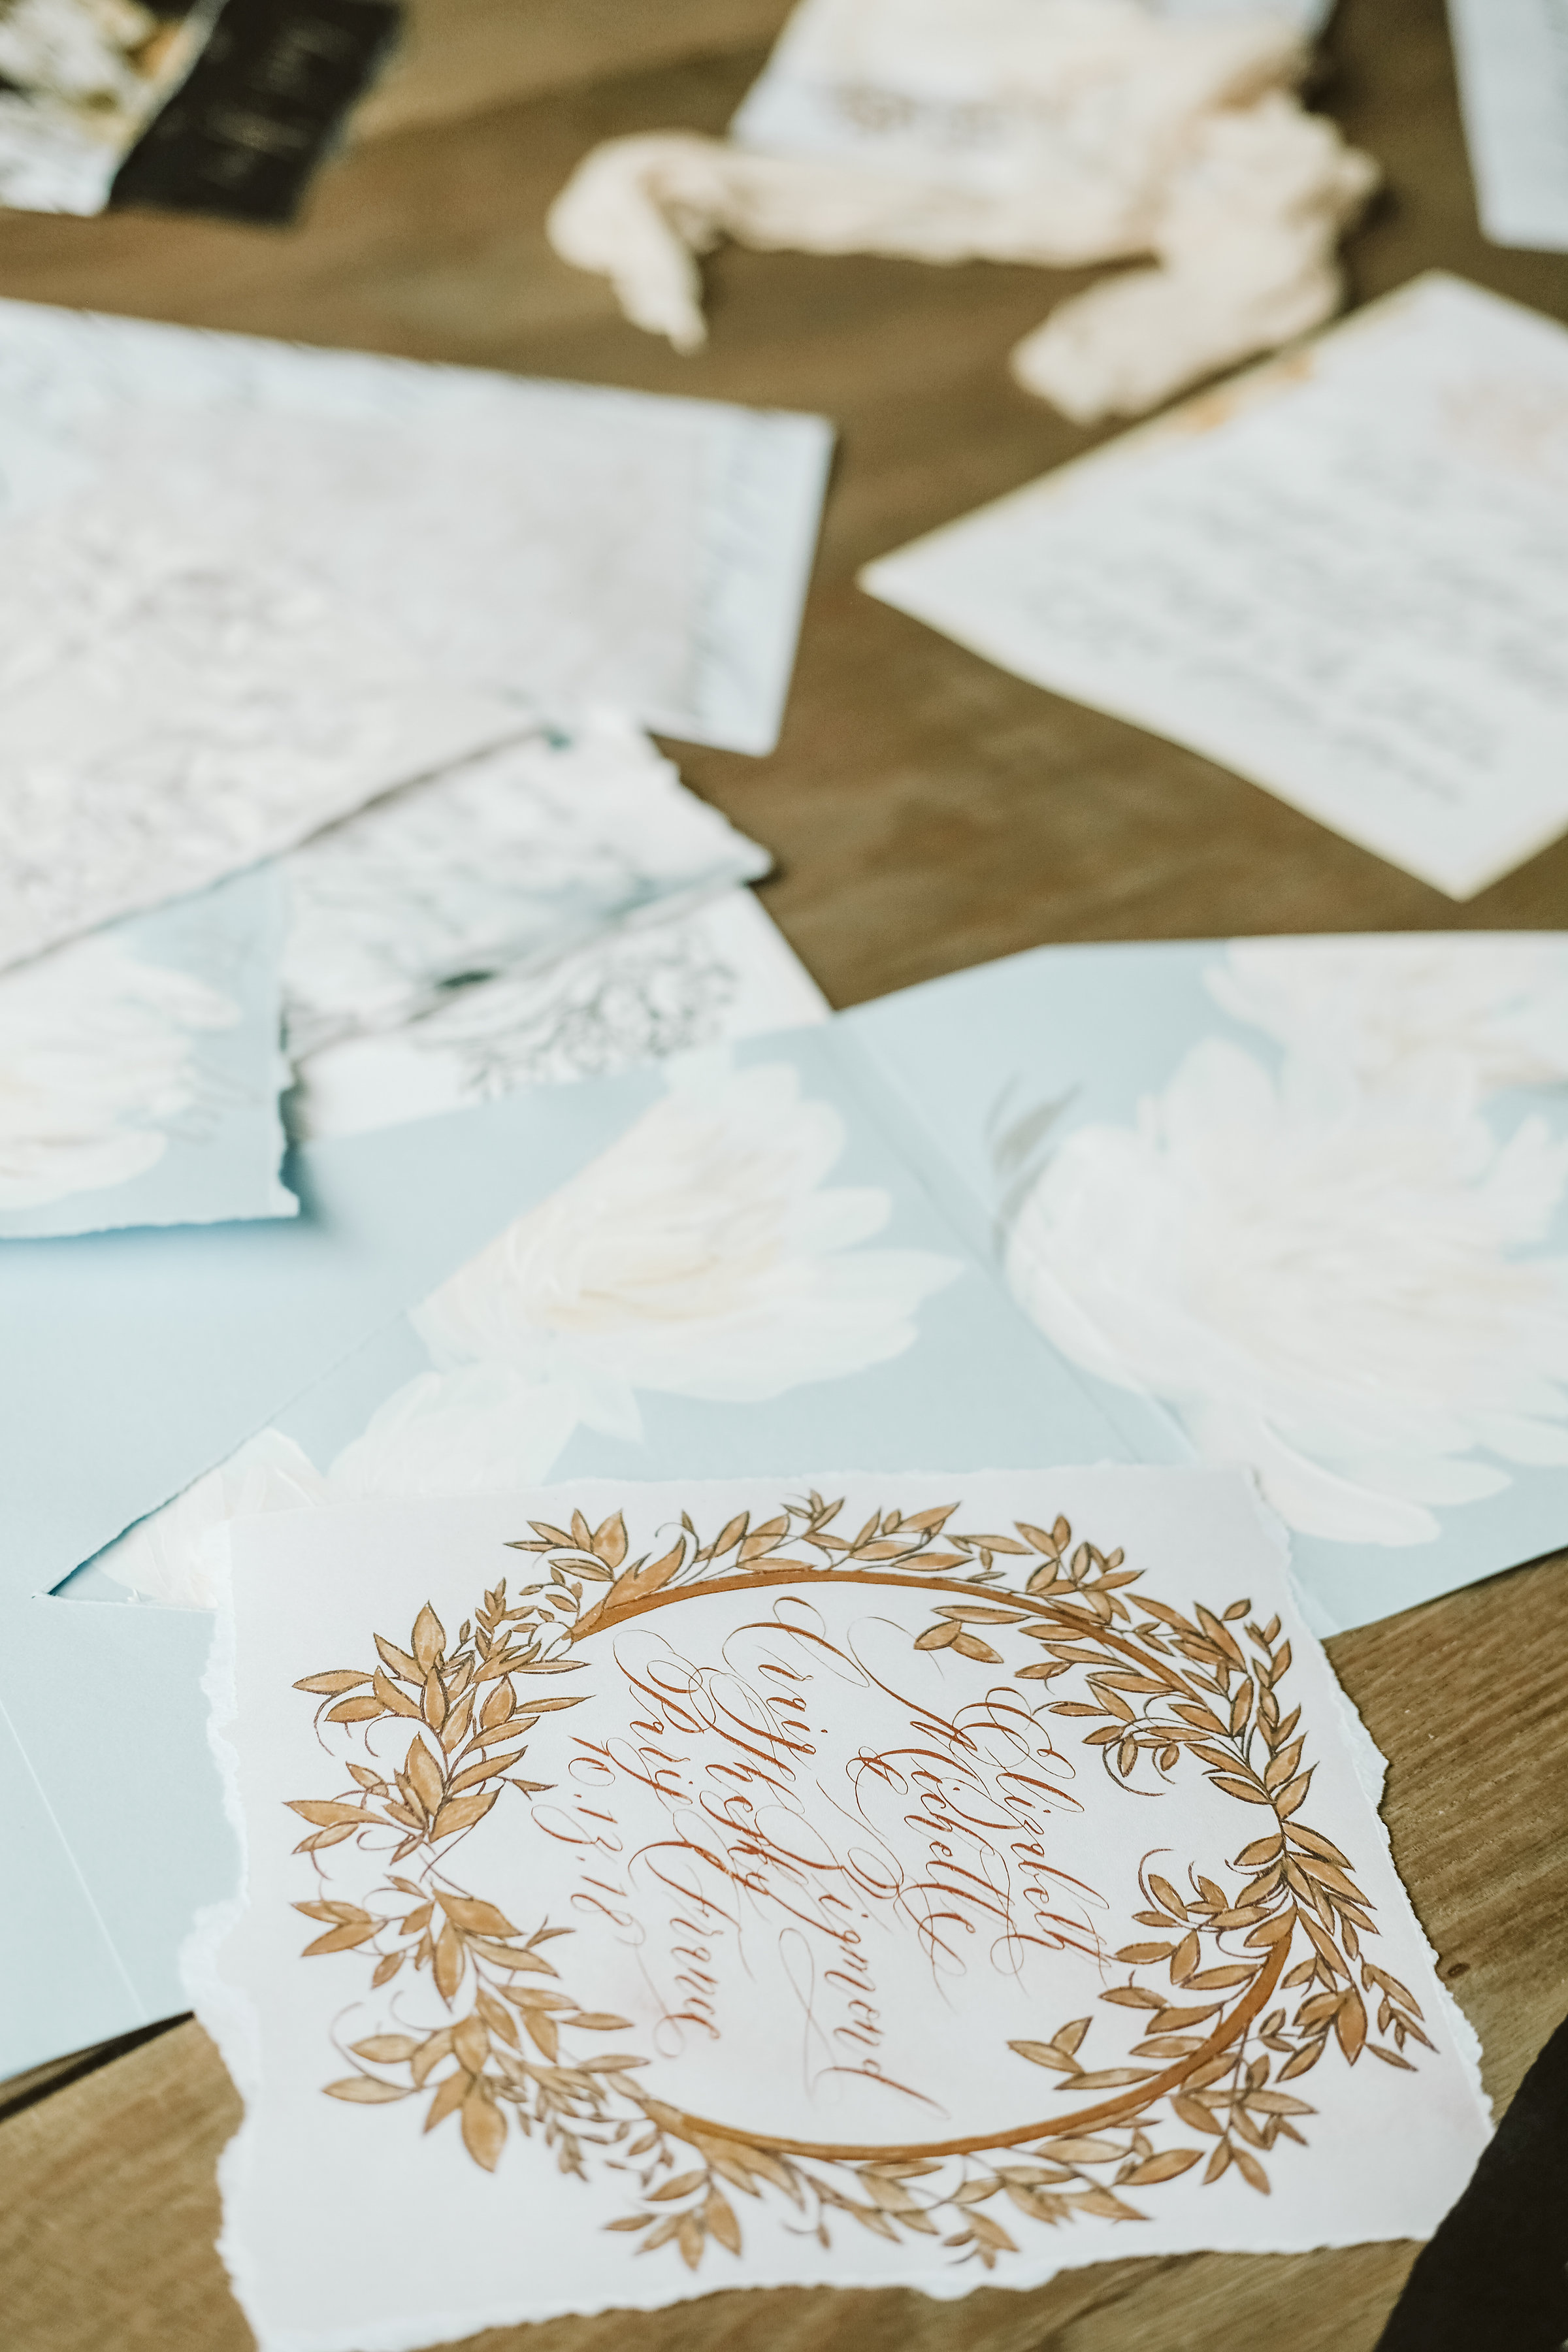 Illustrated wedding invitations with gold leaves design and gold calligraphy